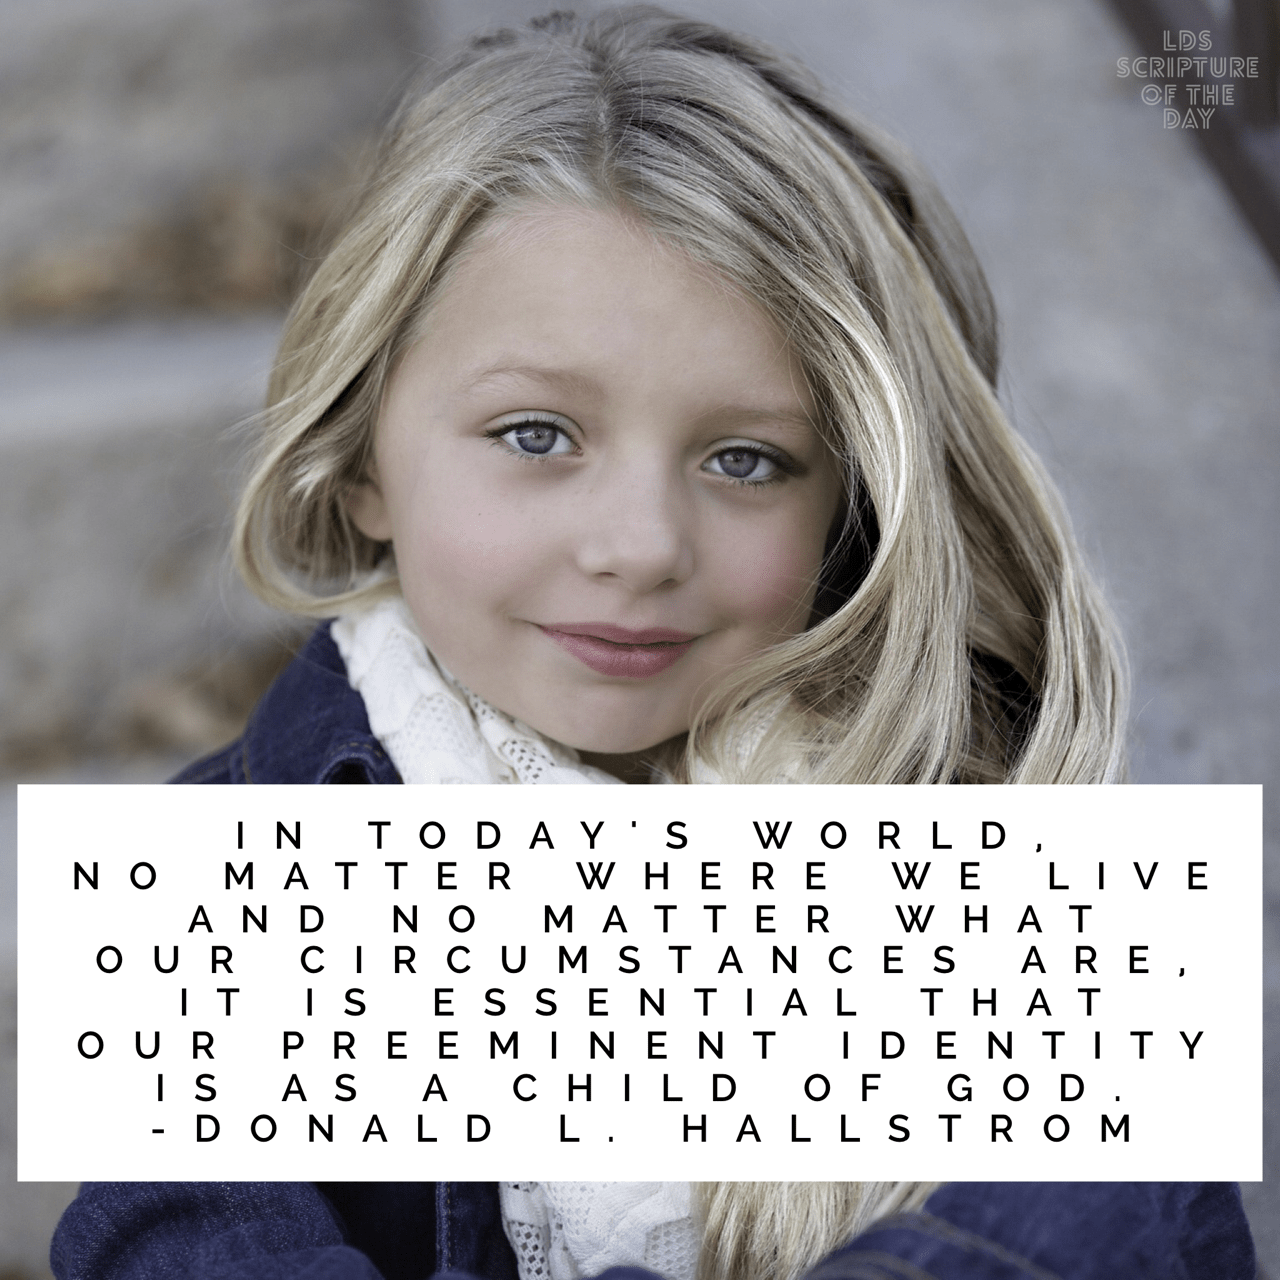 In today's world, no matter where we live and no matter what our circumstances are, it is essential that our preeminent identity is as a child of God. —Donald L. Hallstrom